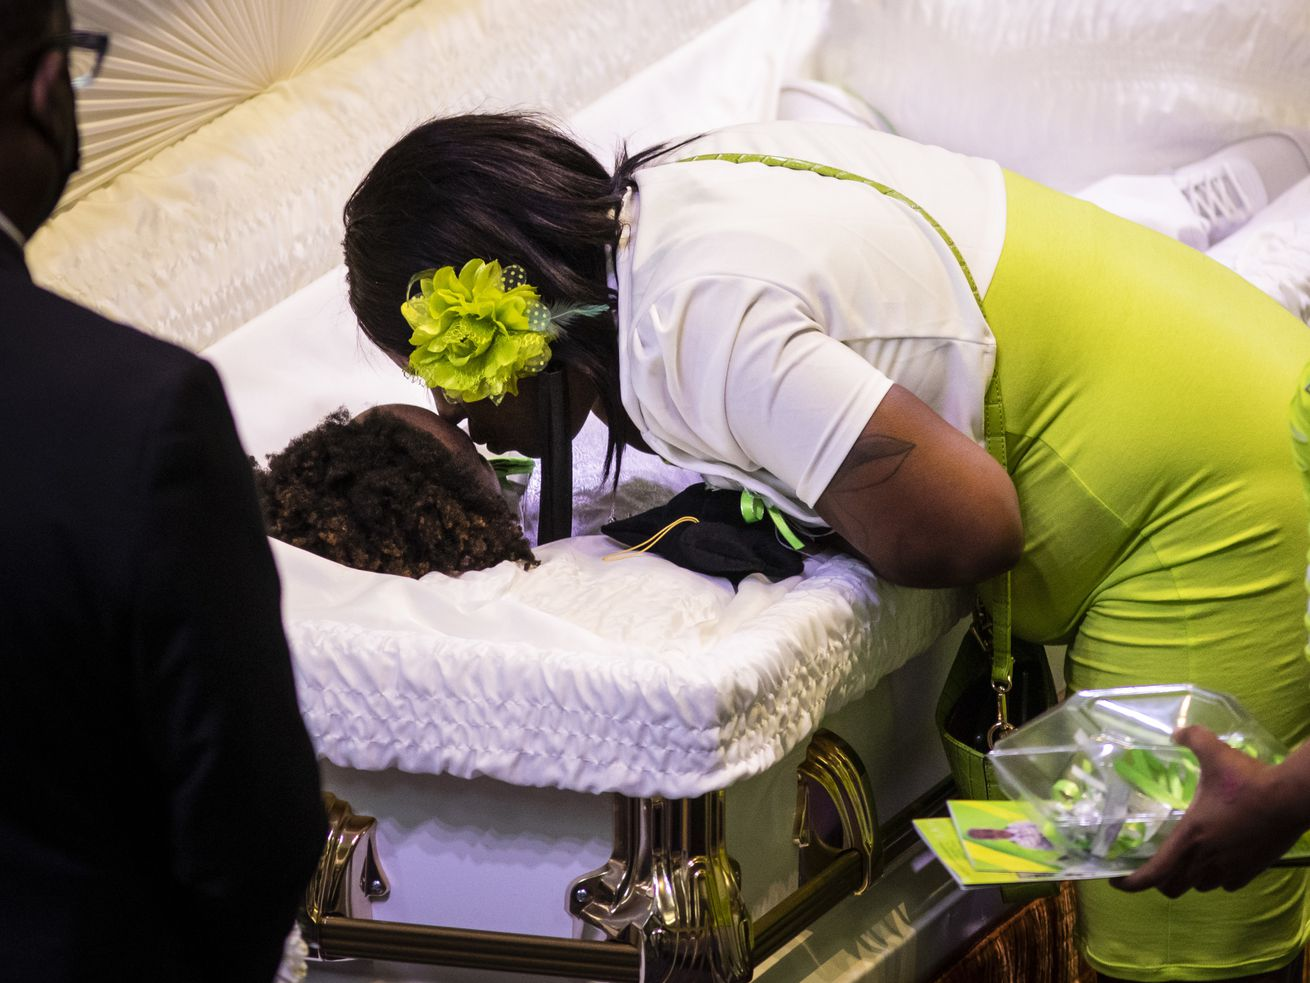 Teirra Black kisses her son, 13-year-old Jamari Dent, during his funeral at Greater Harvest Baptist Church at 5141 S. State St. in Washington Park on the South Side, Tuesday, June 22, 2021. His family said he suffered permanent brain damage when he hanged himself in a suicide attempt in 2019 after months of bullying by Chicago Public Schools staff and students.